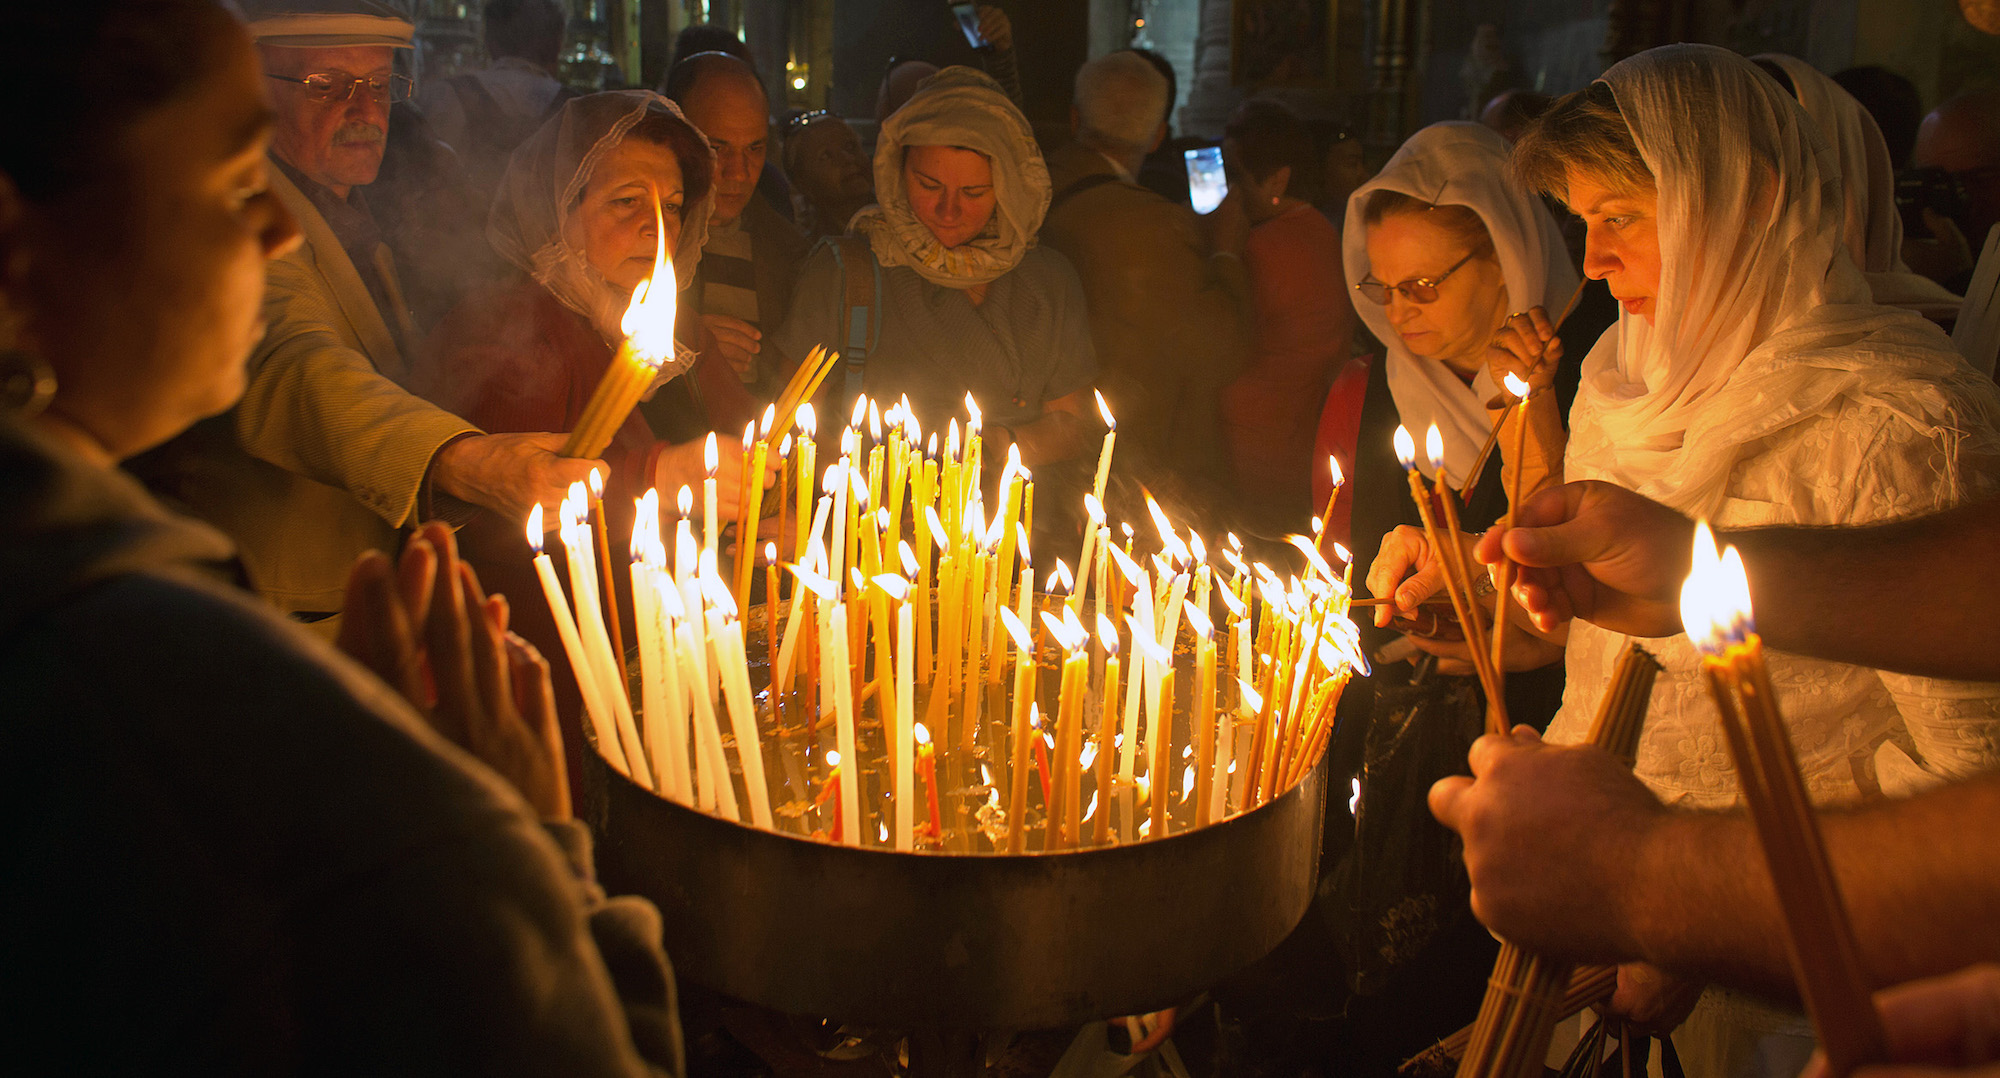 Christian pilgrims light candles during Easter Sunday at the Church of the Holy Sepulchre, traditionally believed by Christians to be the site of the crucifixion and burial of Jesus Christ. Thousands of Christians from across the world flocked to Jerusalem to commemorate the day when, according to Christian tradition, Jesus resurrected. Jerusalem, April 16, 2017 (Photo by Heidi Levine/GroundTruth).